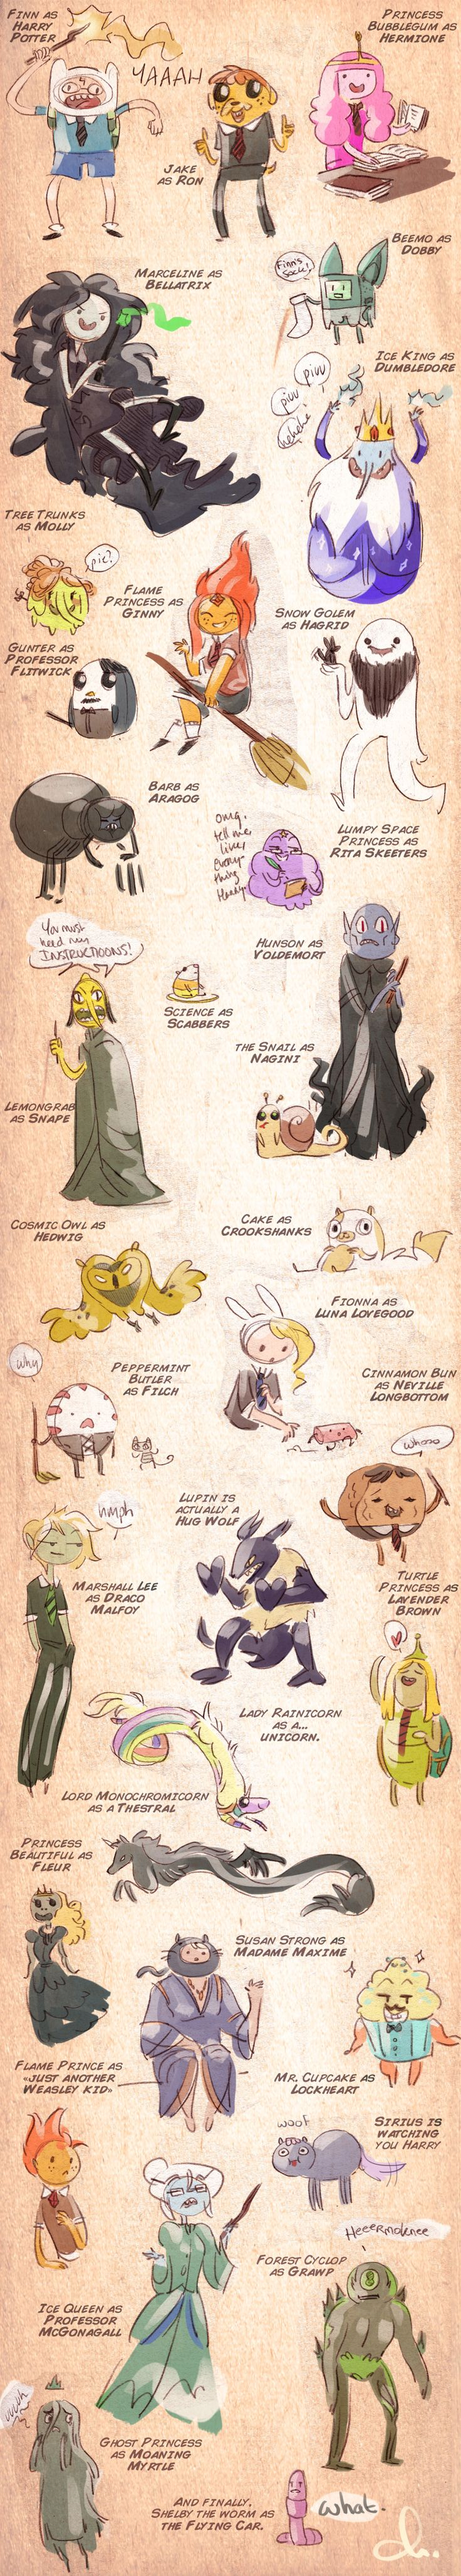 Perfection level over 9000... omg. > Harry Potter CrossOver Adventure Time.